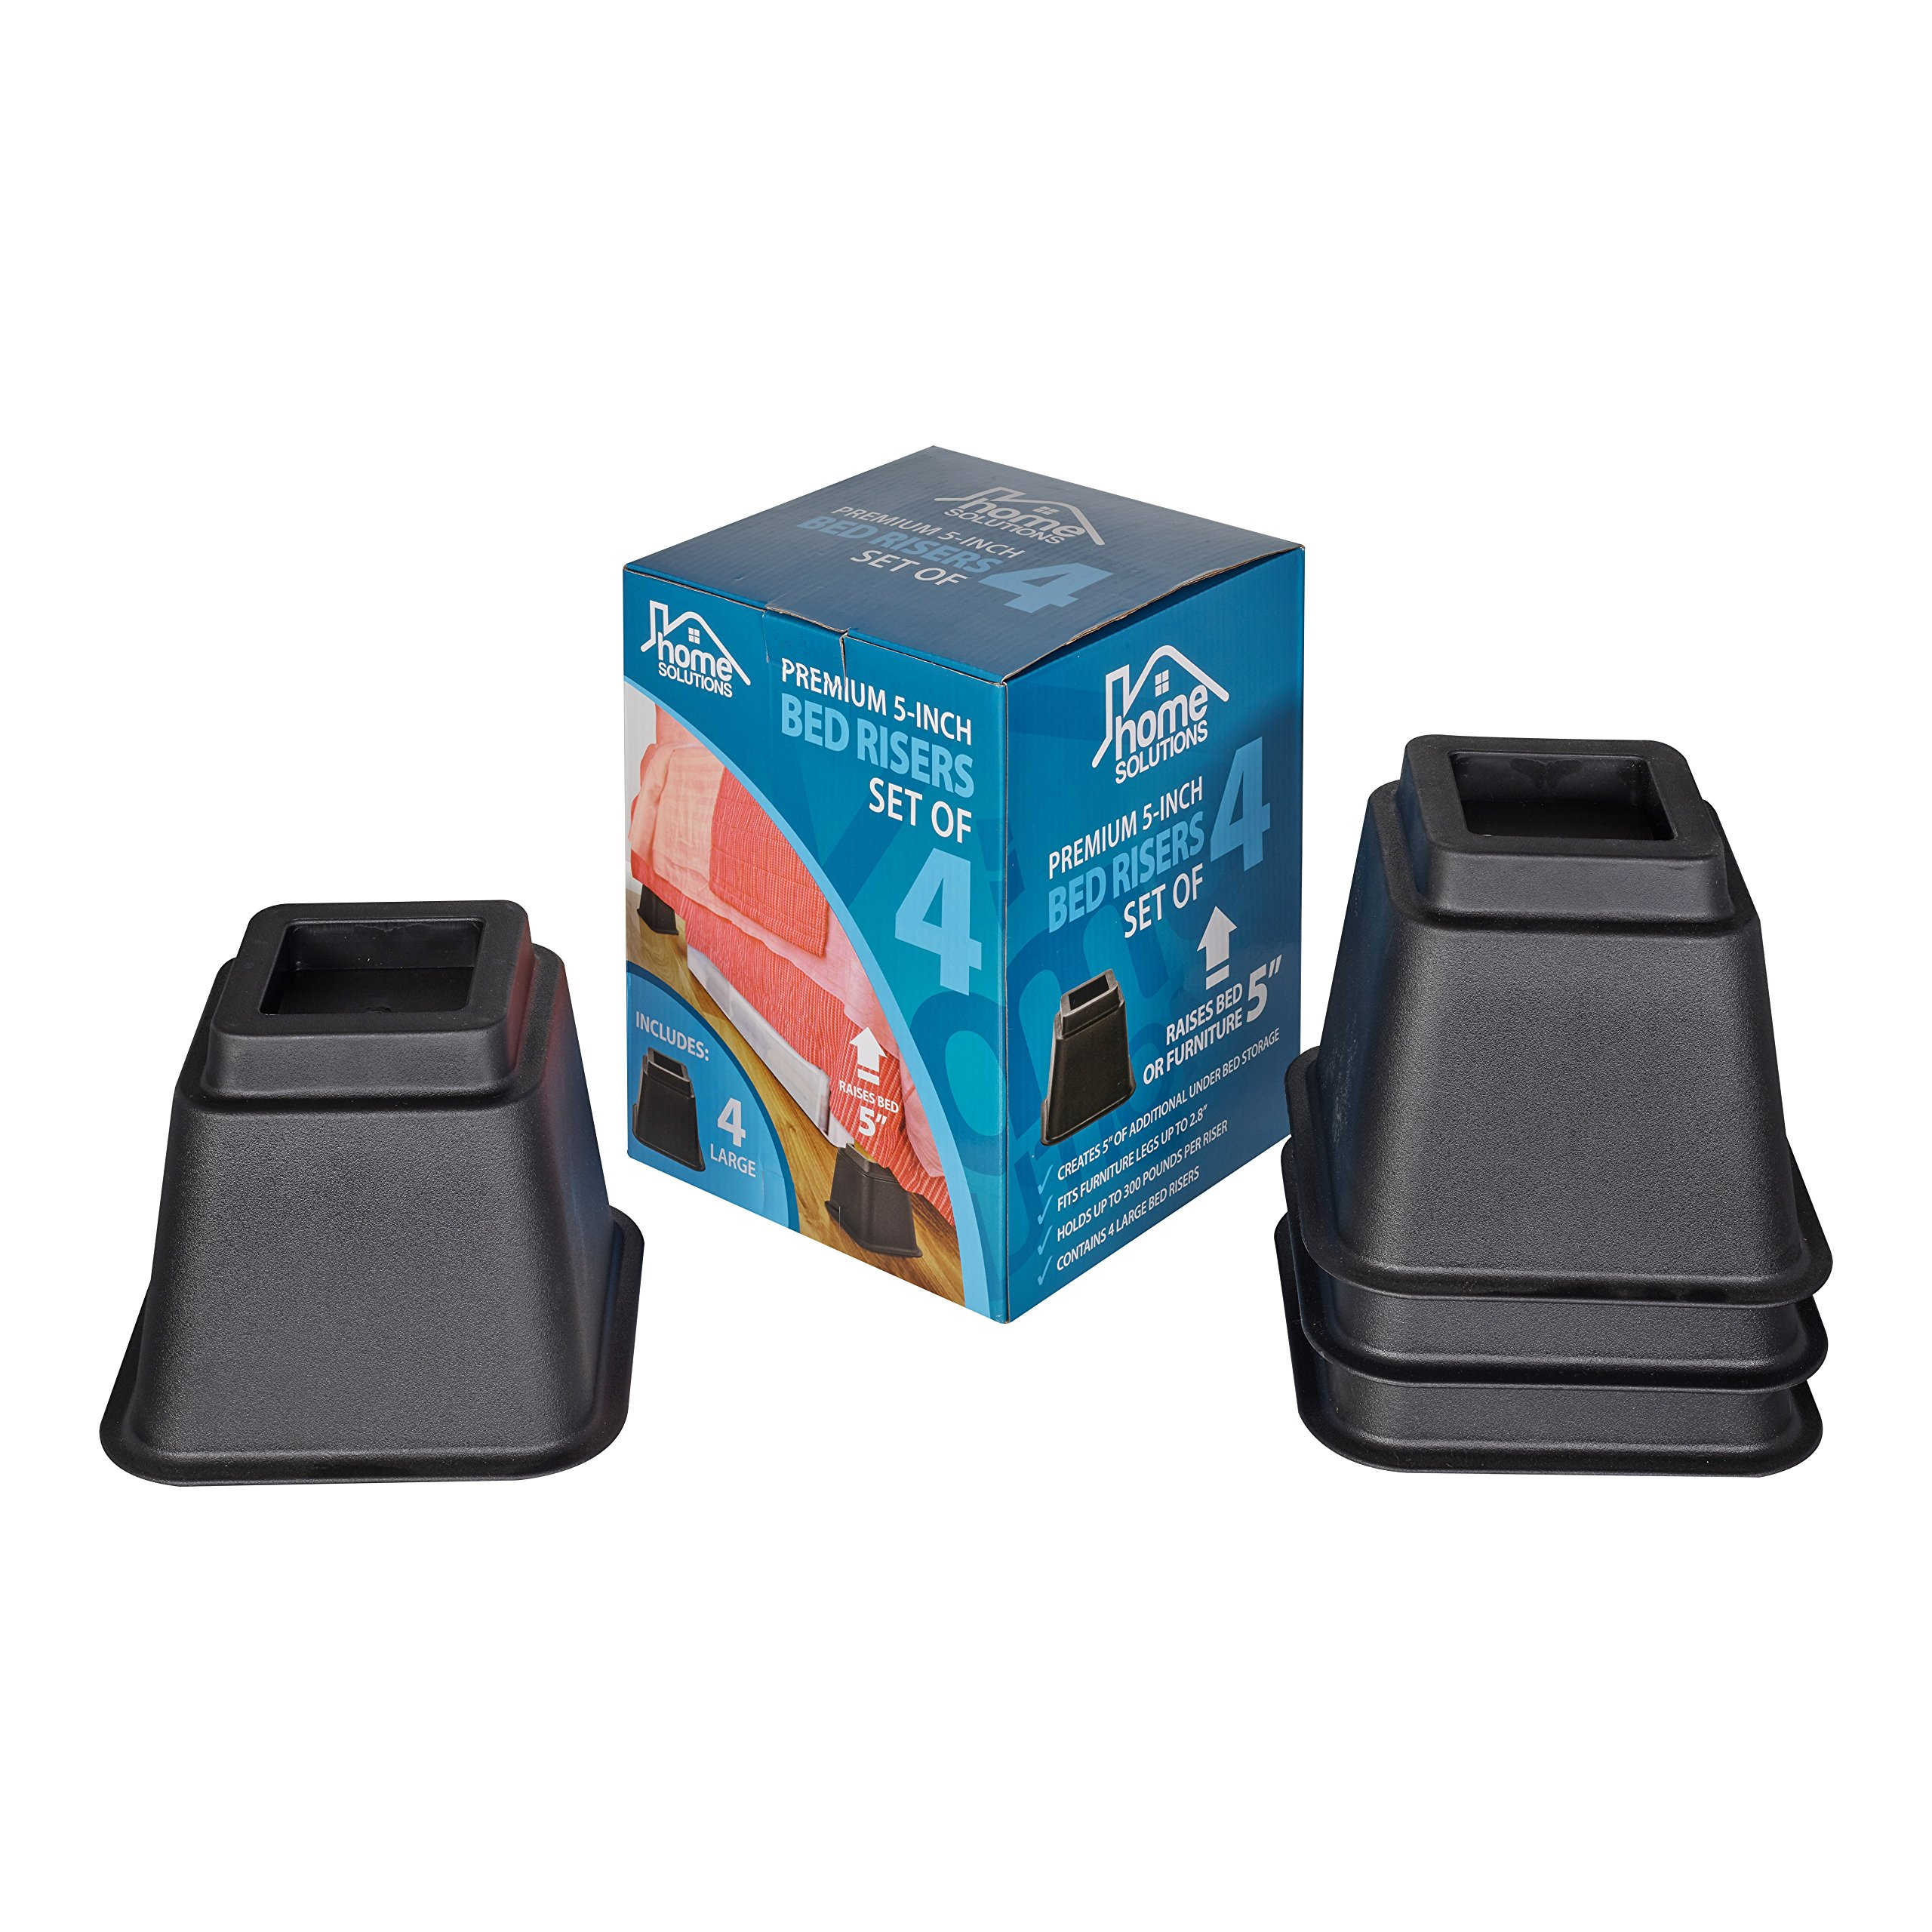 Home Solutions Premium 5-Inch Bed Risers or Furniture Risers, Table Risers, Chair Risers or Sofa Risers-The Perfect Bed Risers for Dorm Rooms (Set of 4) by Home Solutions